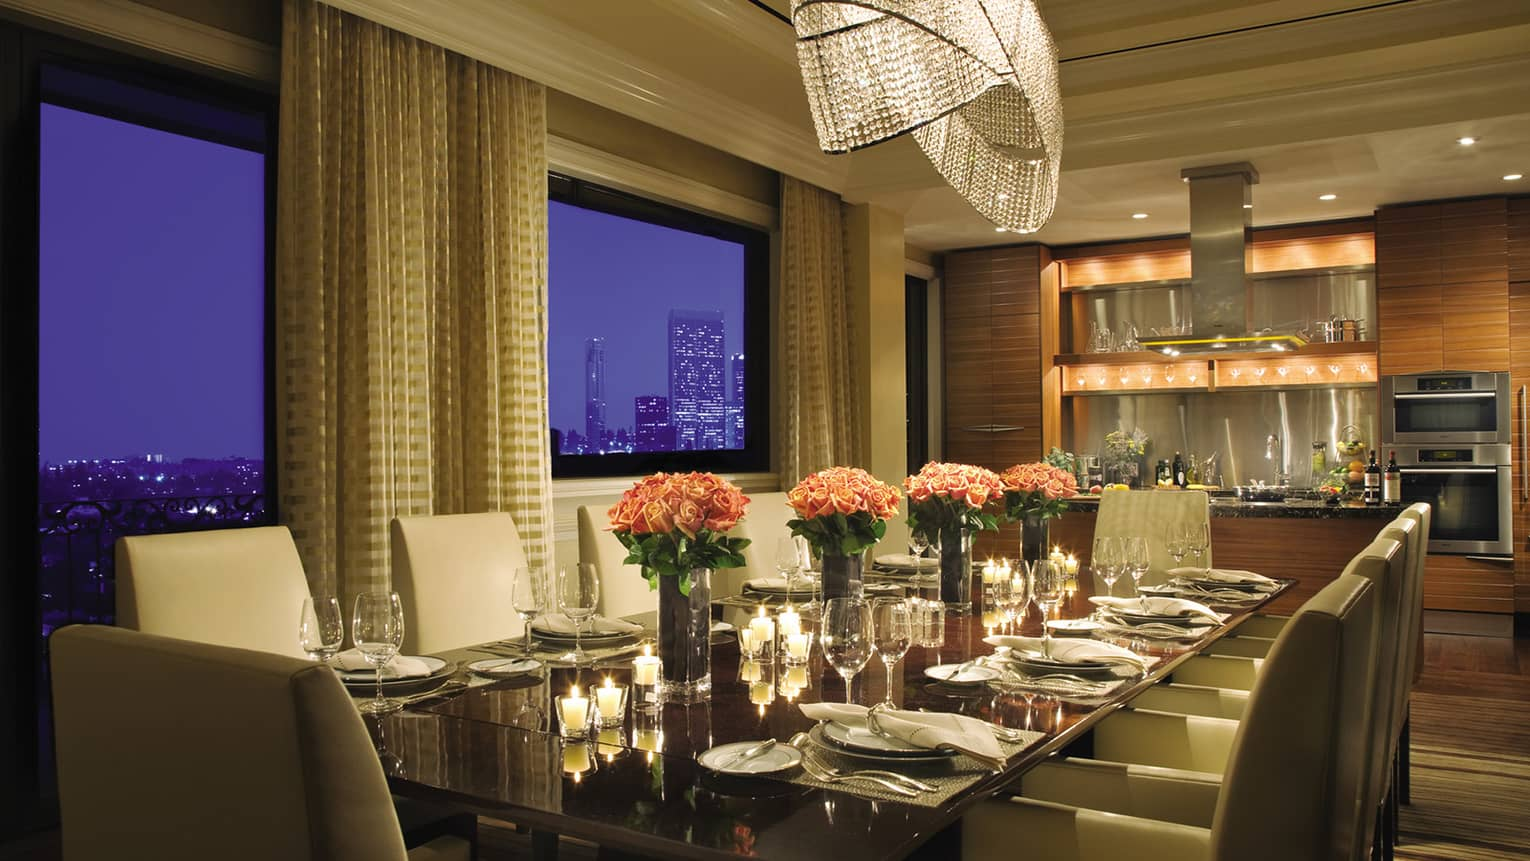 Penthouse Suite private, candlelit dining table with pink roses by windows, kitchenette at night